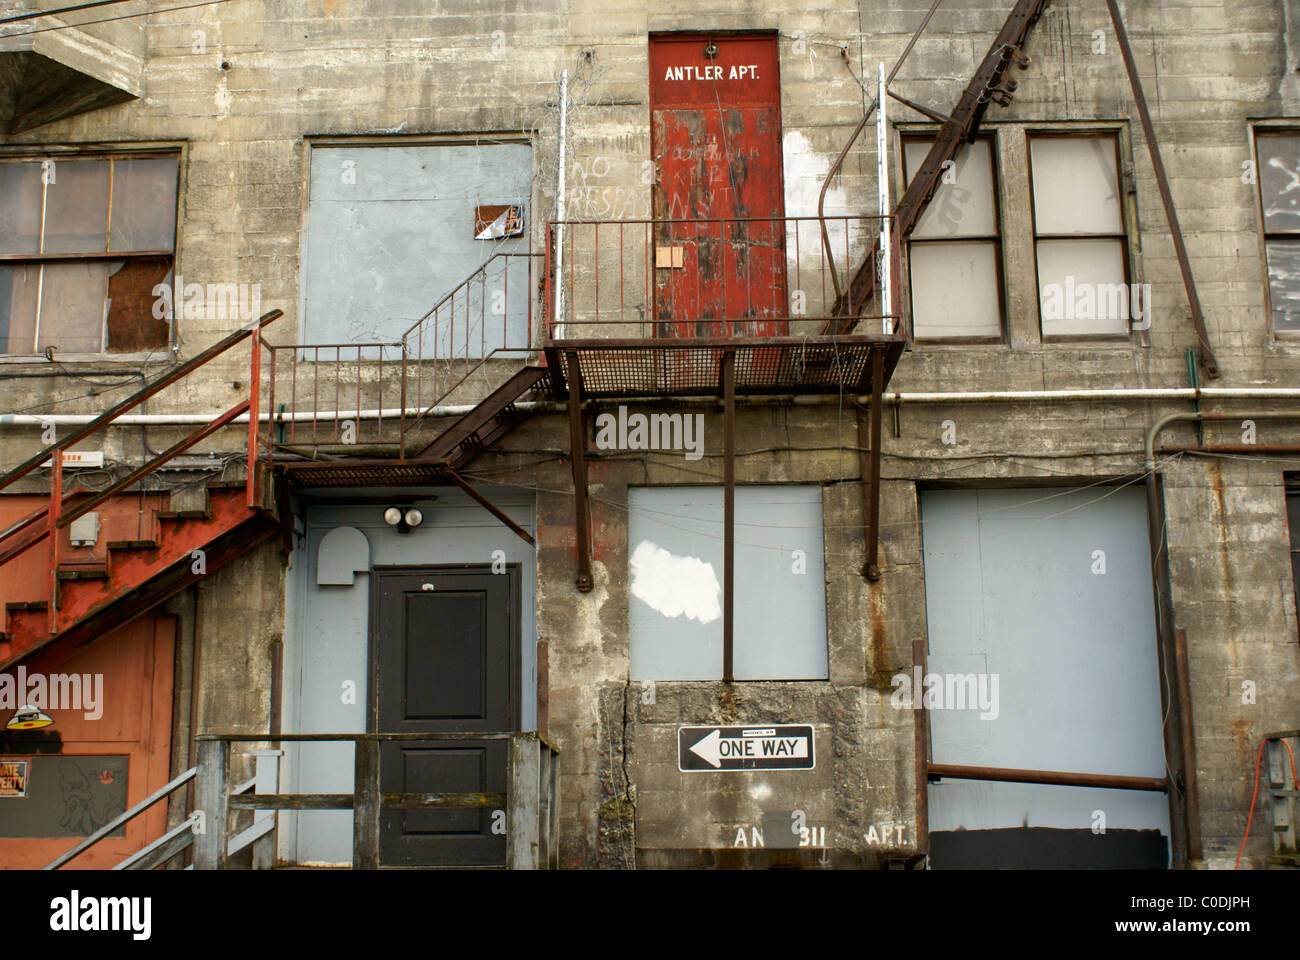 rear-view-of-a-dilapidated-building-and-